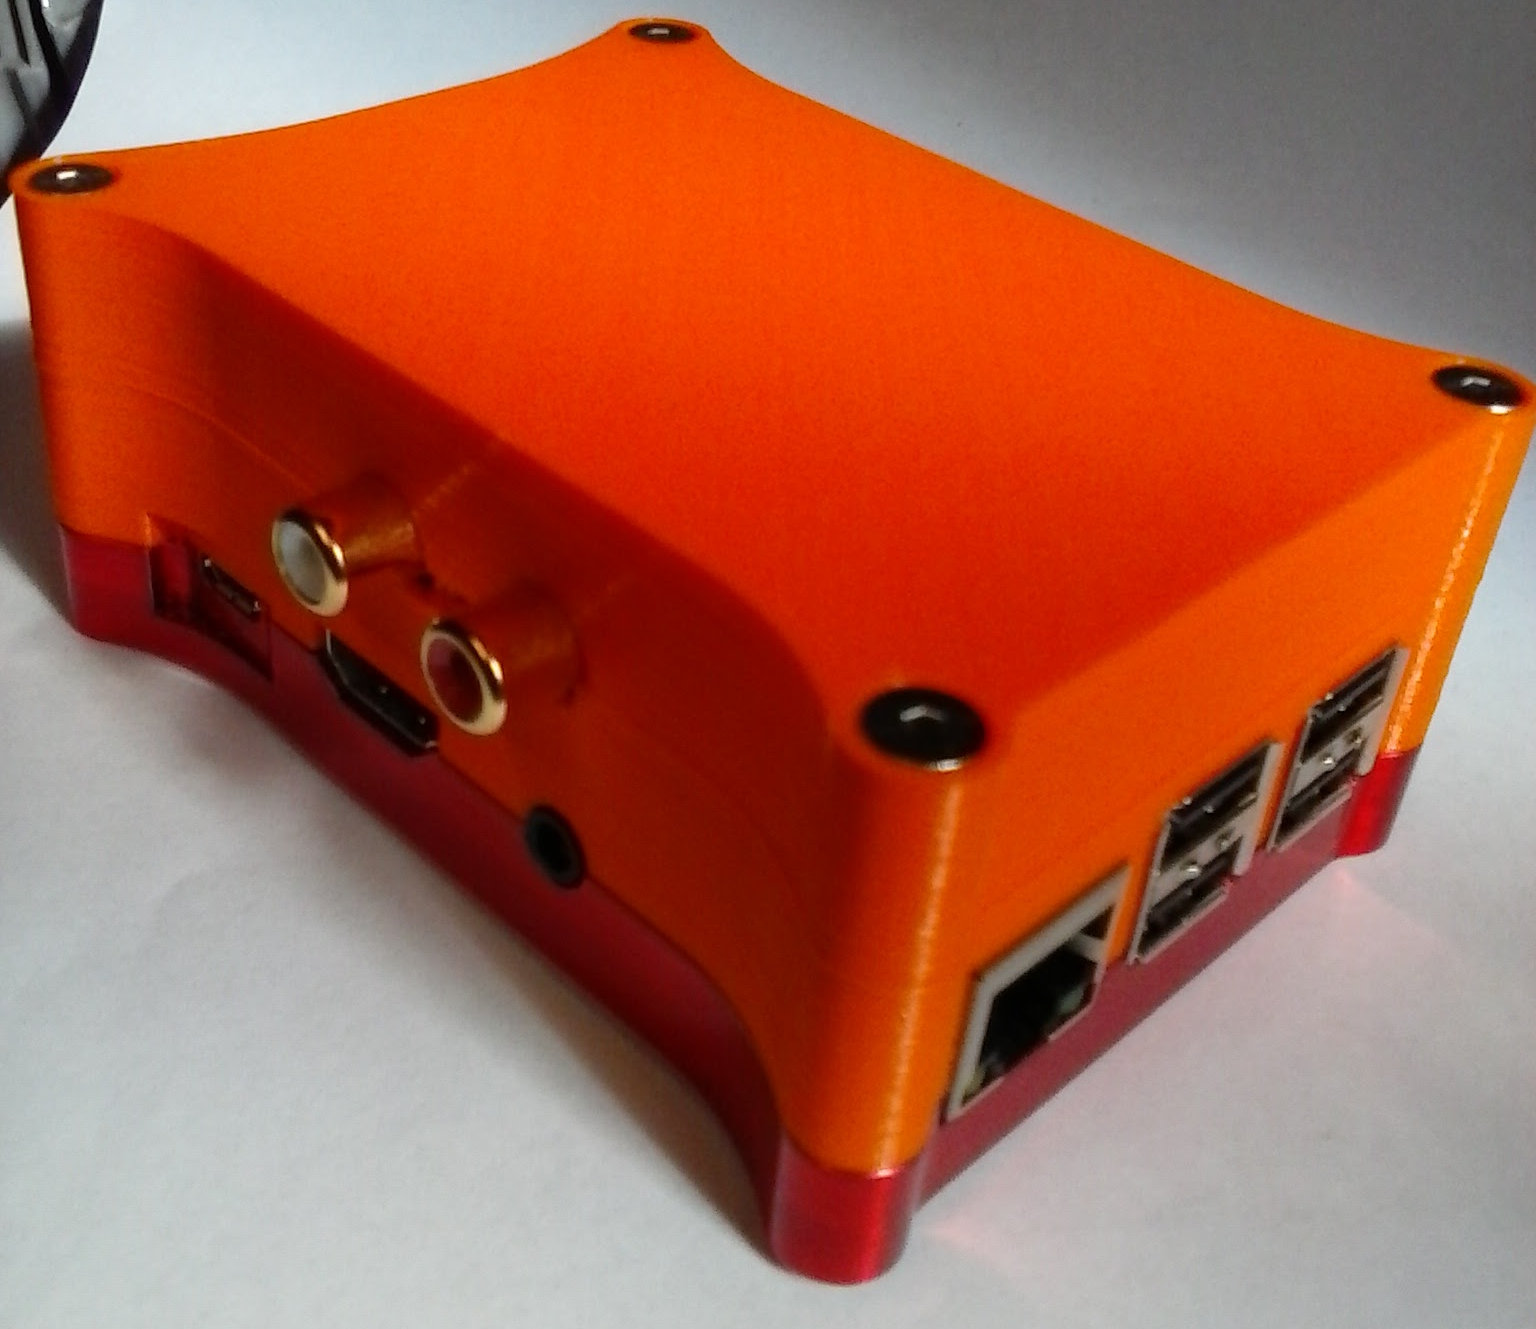 HifiBerry DAC+ Case Finished 3D print